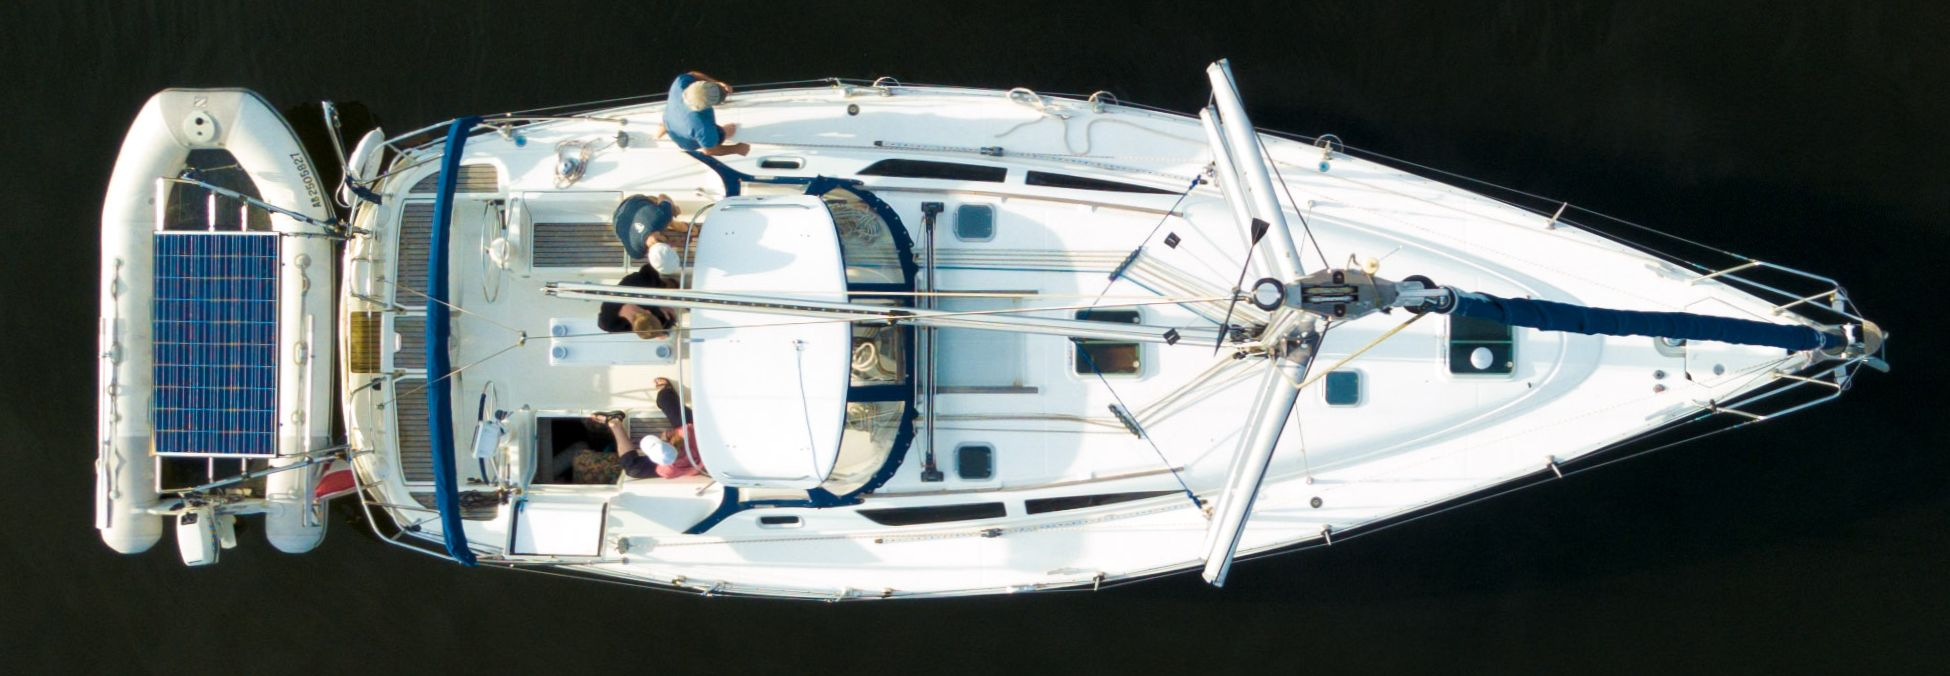 From the top of the mast